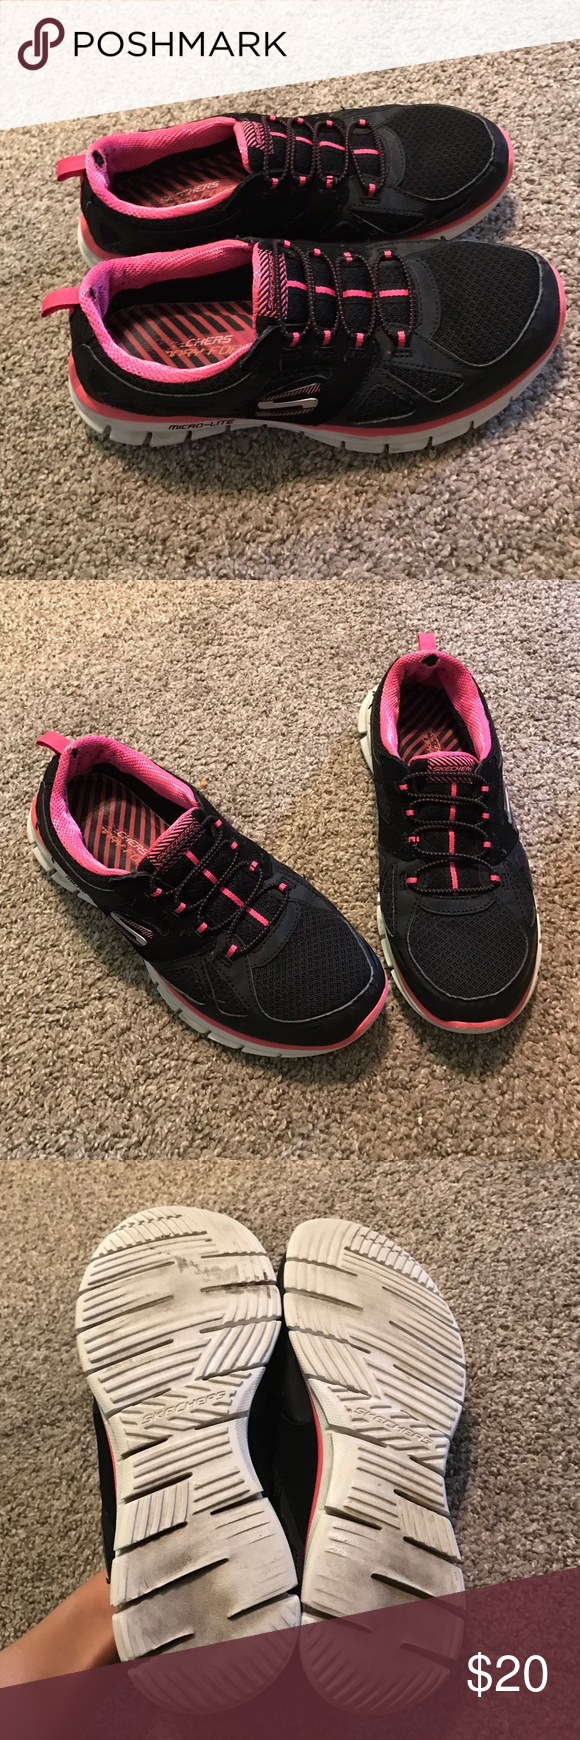 Skechers Size 7.5 Women's Skechers size 7.5. Worn, in fair condition. They have tears at the end as seen in picture, but nothing major! Very nice and comfortable shoes. Will ship same day of purchase! Skechers Shoes Athletic Shoes